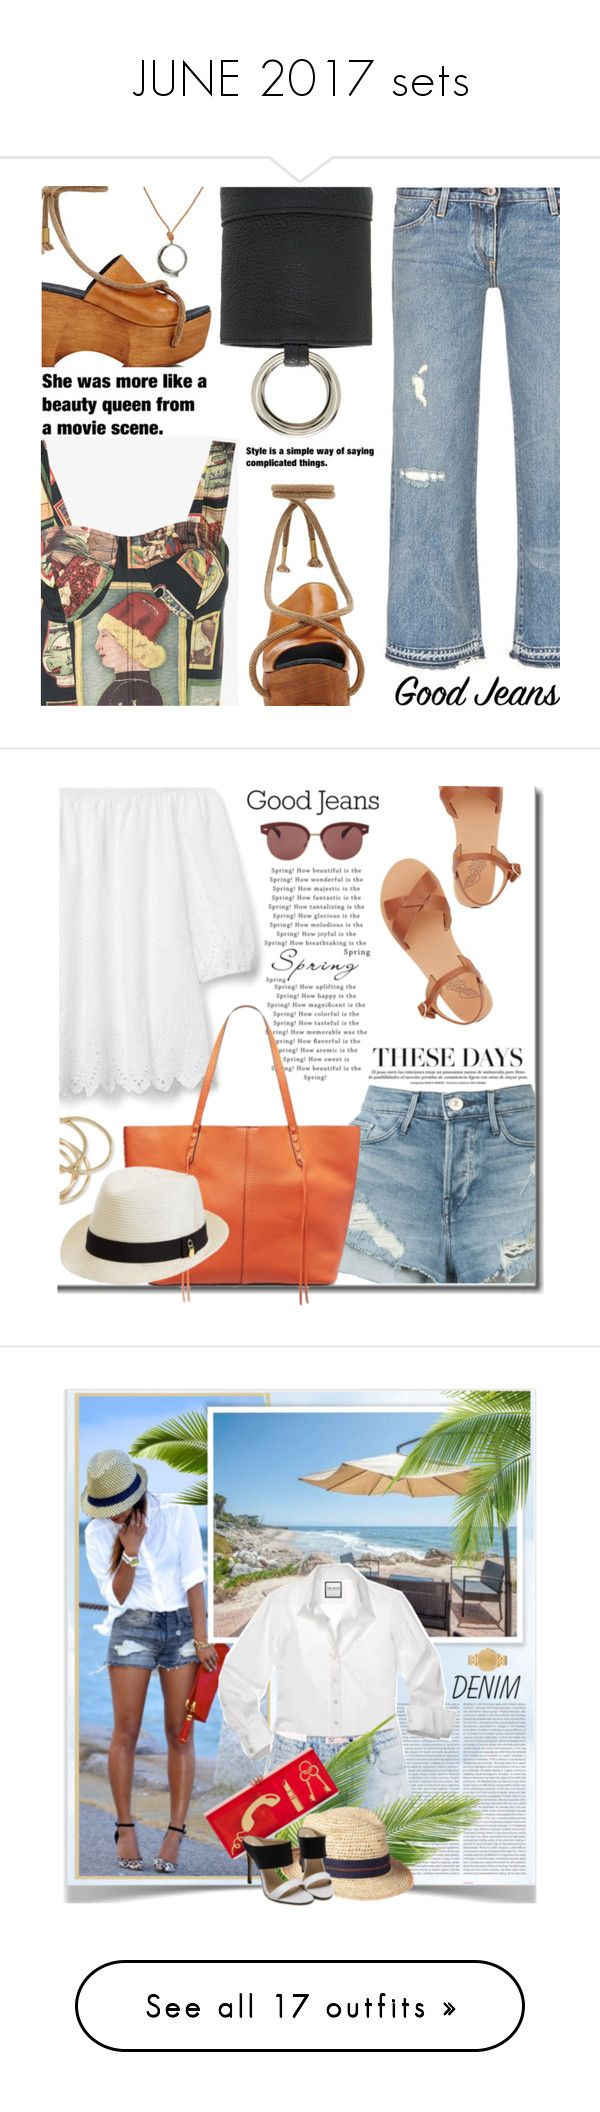 """JUNE 2017 sets"" by shoaleh-nia on Polyvore featuring Simon Miller, Rebecca Pinto, Gap, 3x1, Rebecca Minkoff, ABS by Allen Schwartz, Melissa Odabash, Oliver Peoples, Ancient Greek Sandals and Oris"